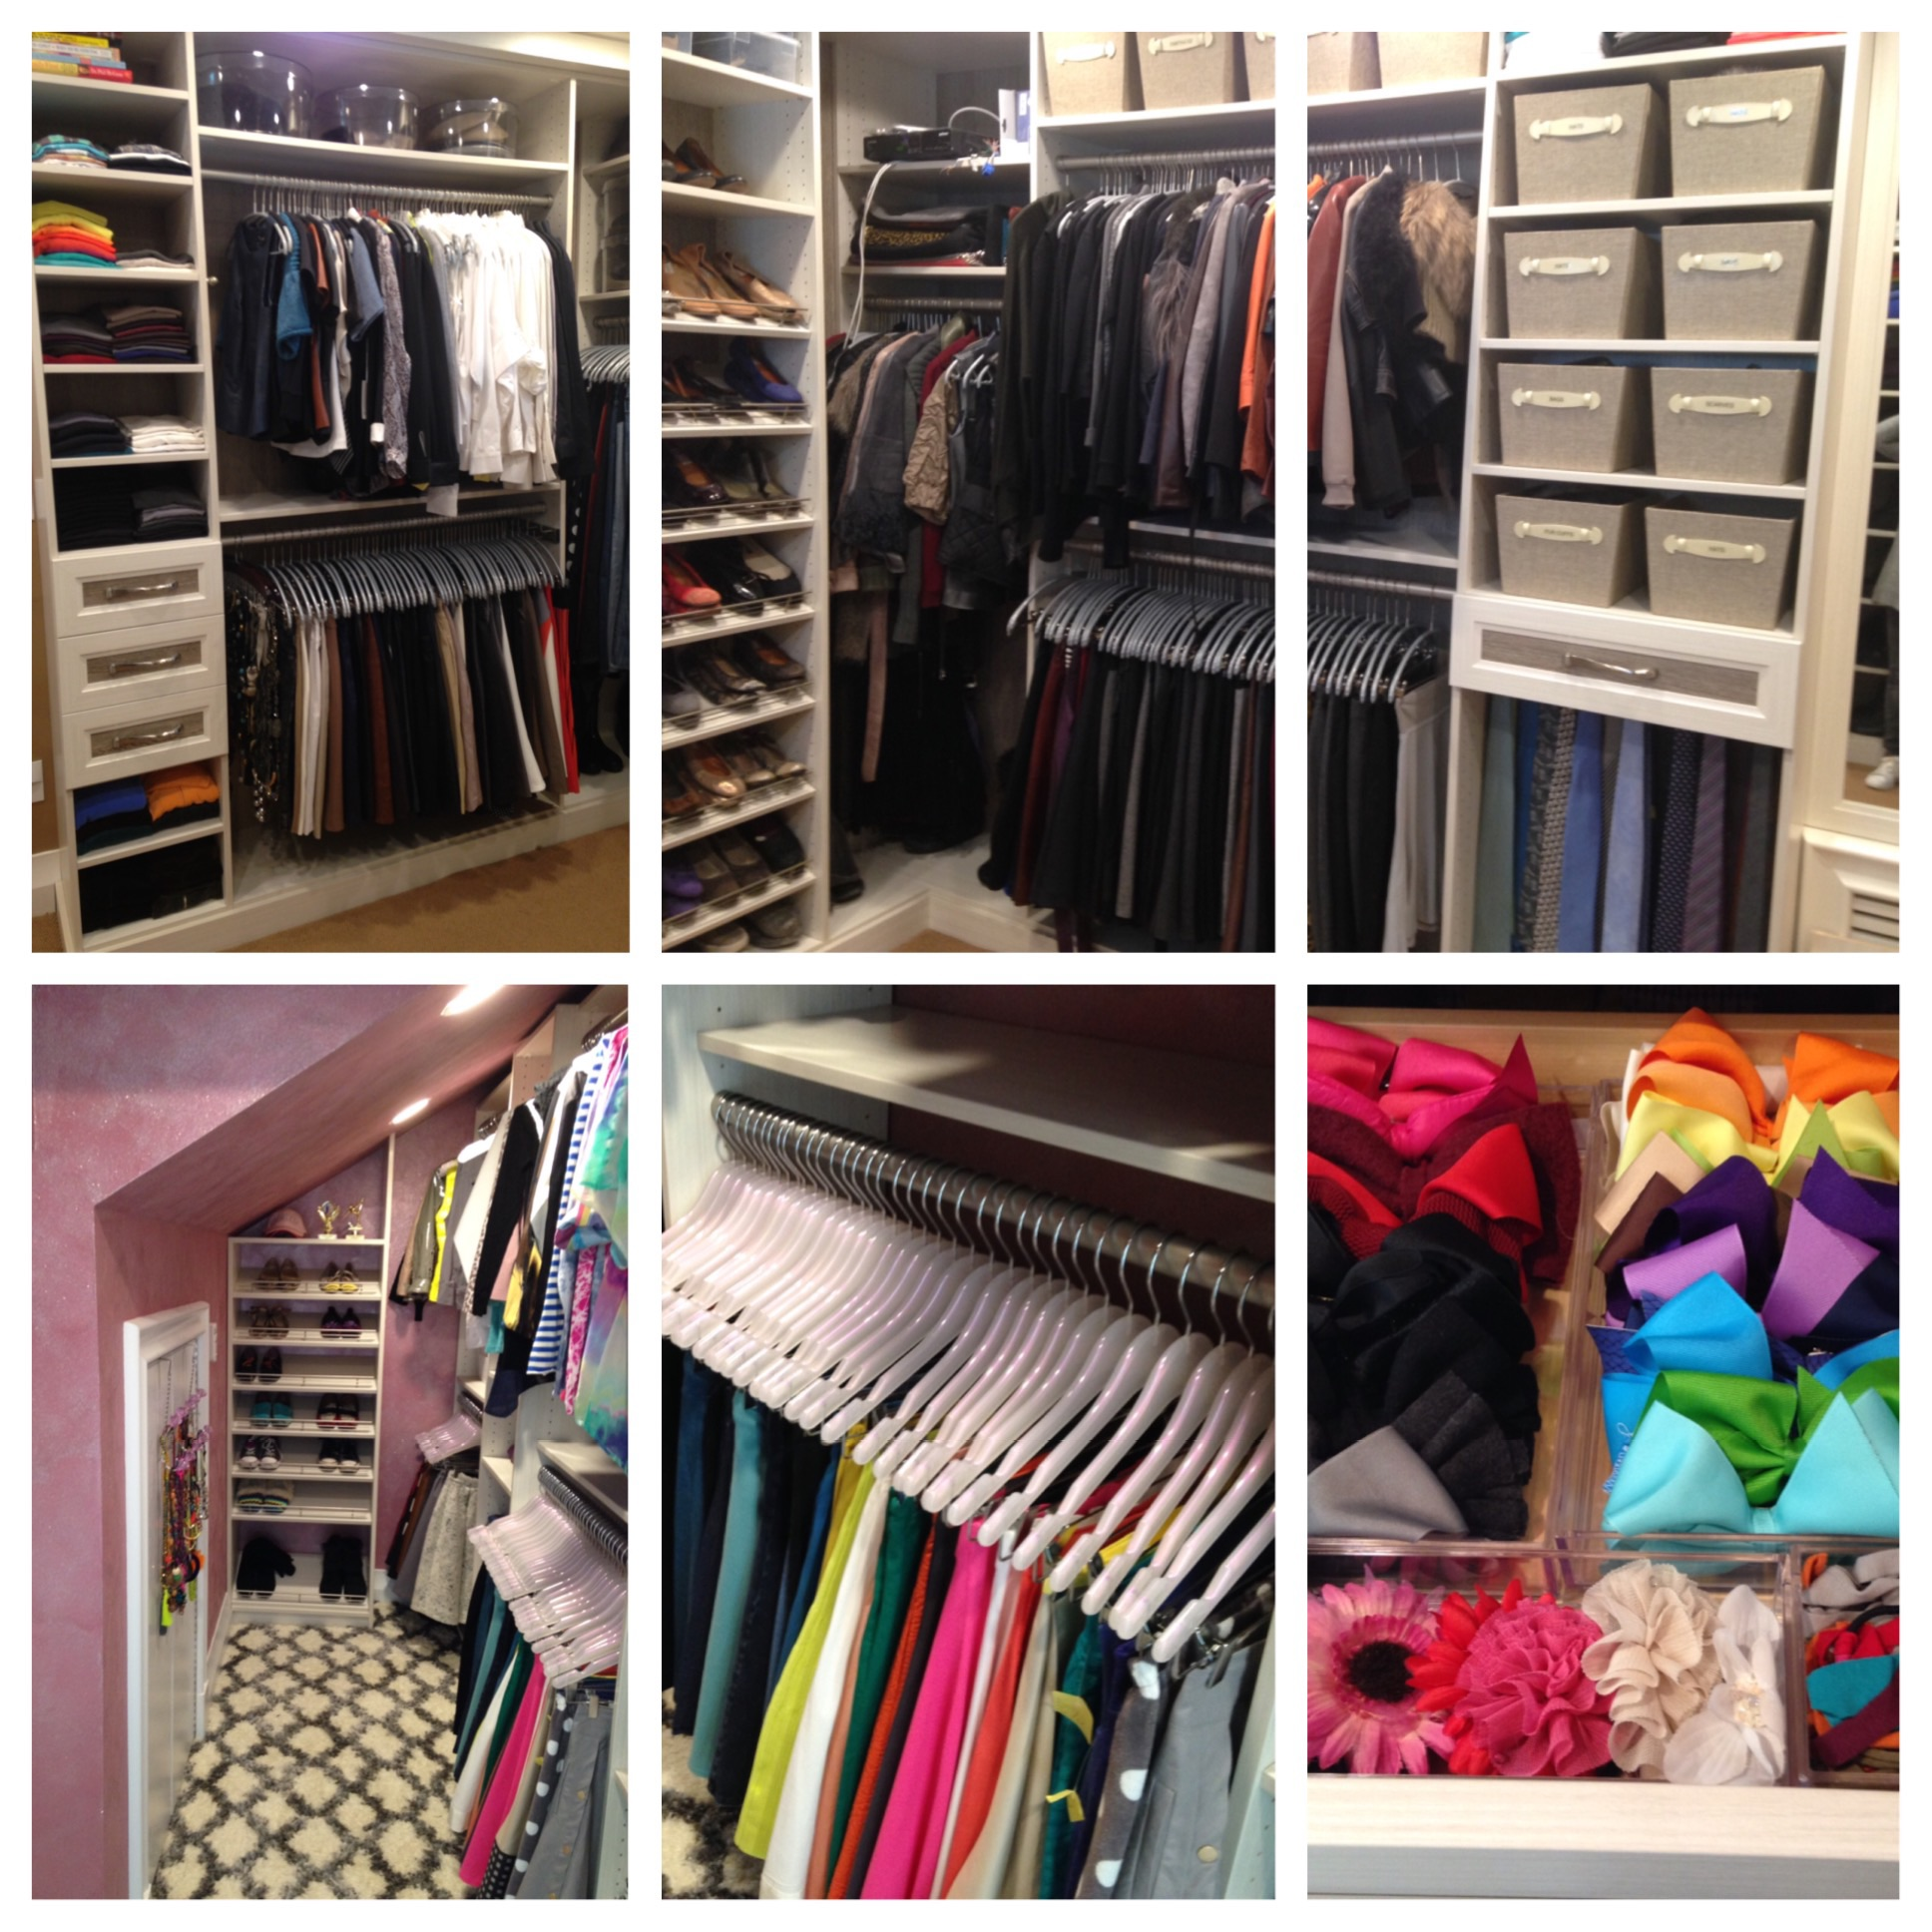 Above: Closet organizing done to perfection. Different hangers for different uses all chosen and ordered by LMO.